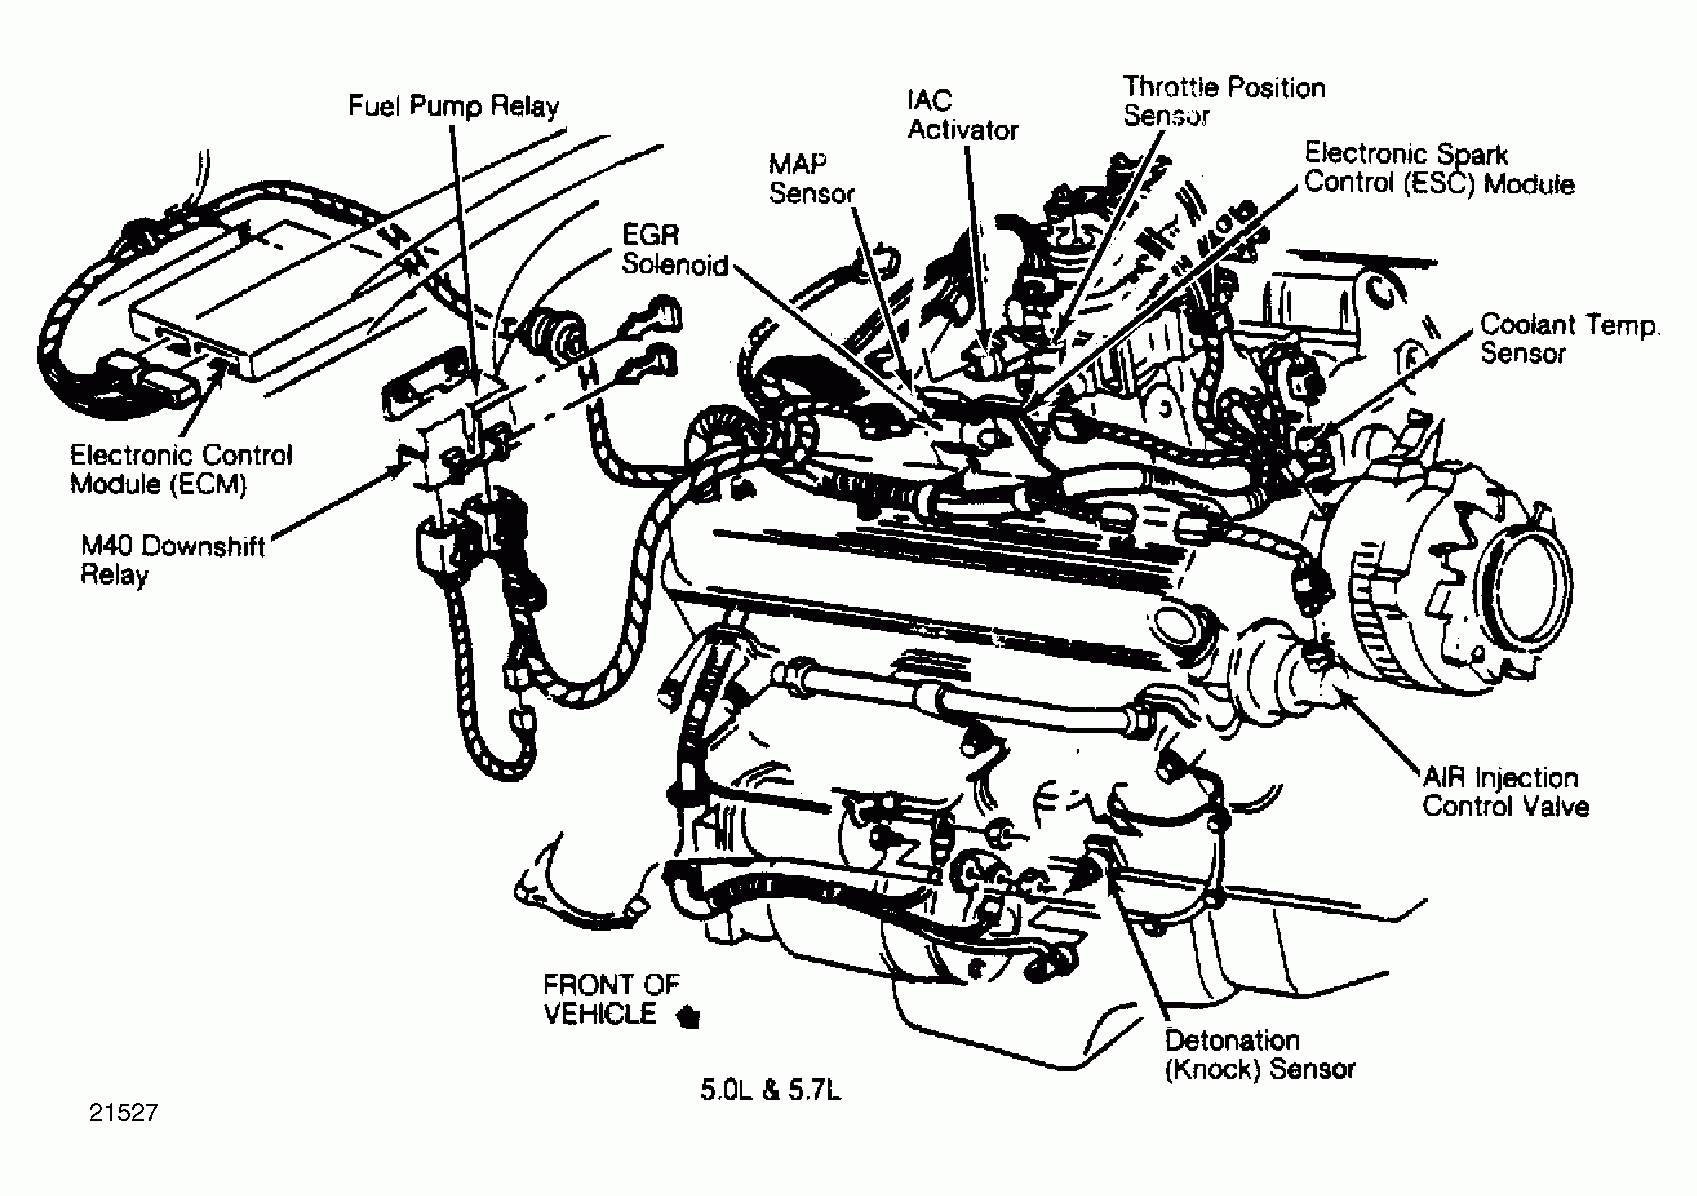 2003 Chevy Cavalier Engine Diagram 2003 Chevy 2 2l Engine Diagram Wiring Diagram forward Of 2003 Chevy Cavalier Engine Diagram